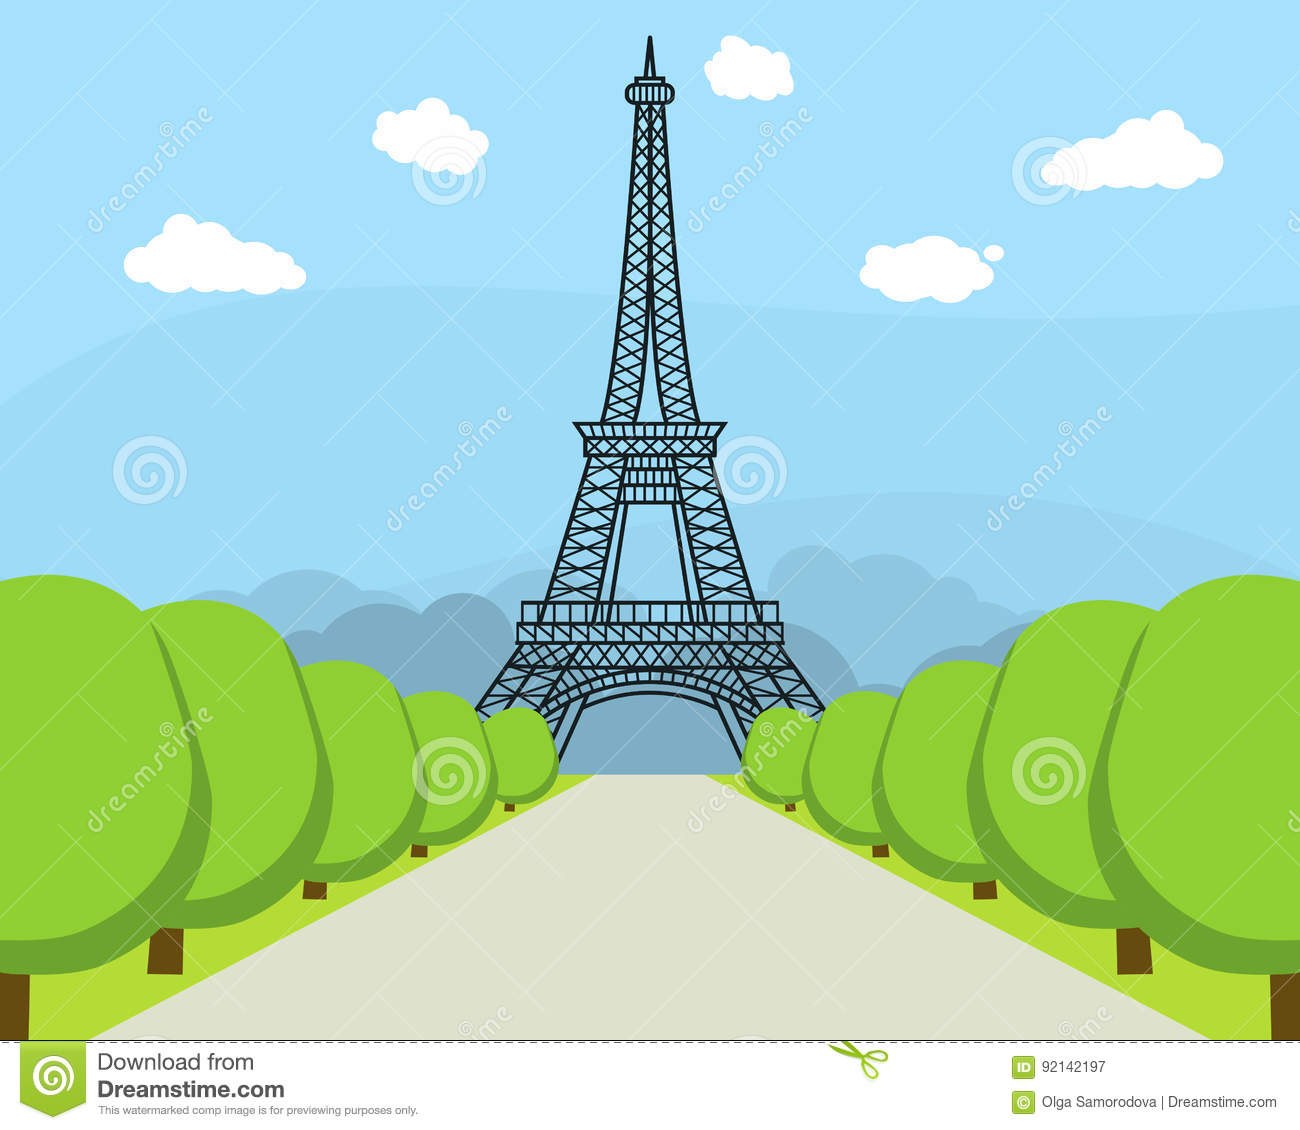 Cartoon Eiffel Tower Stock Illustrations 1 848 Cartoon Eiffel Tower Stock Illustrations Vectors Clipart Dreamstime